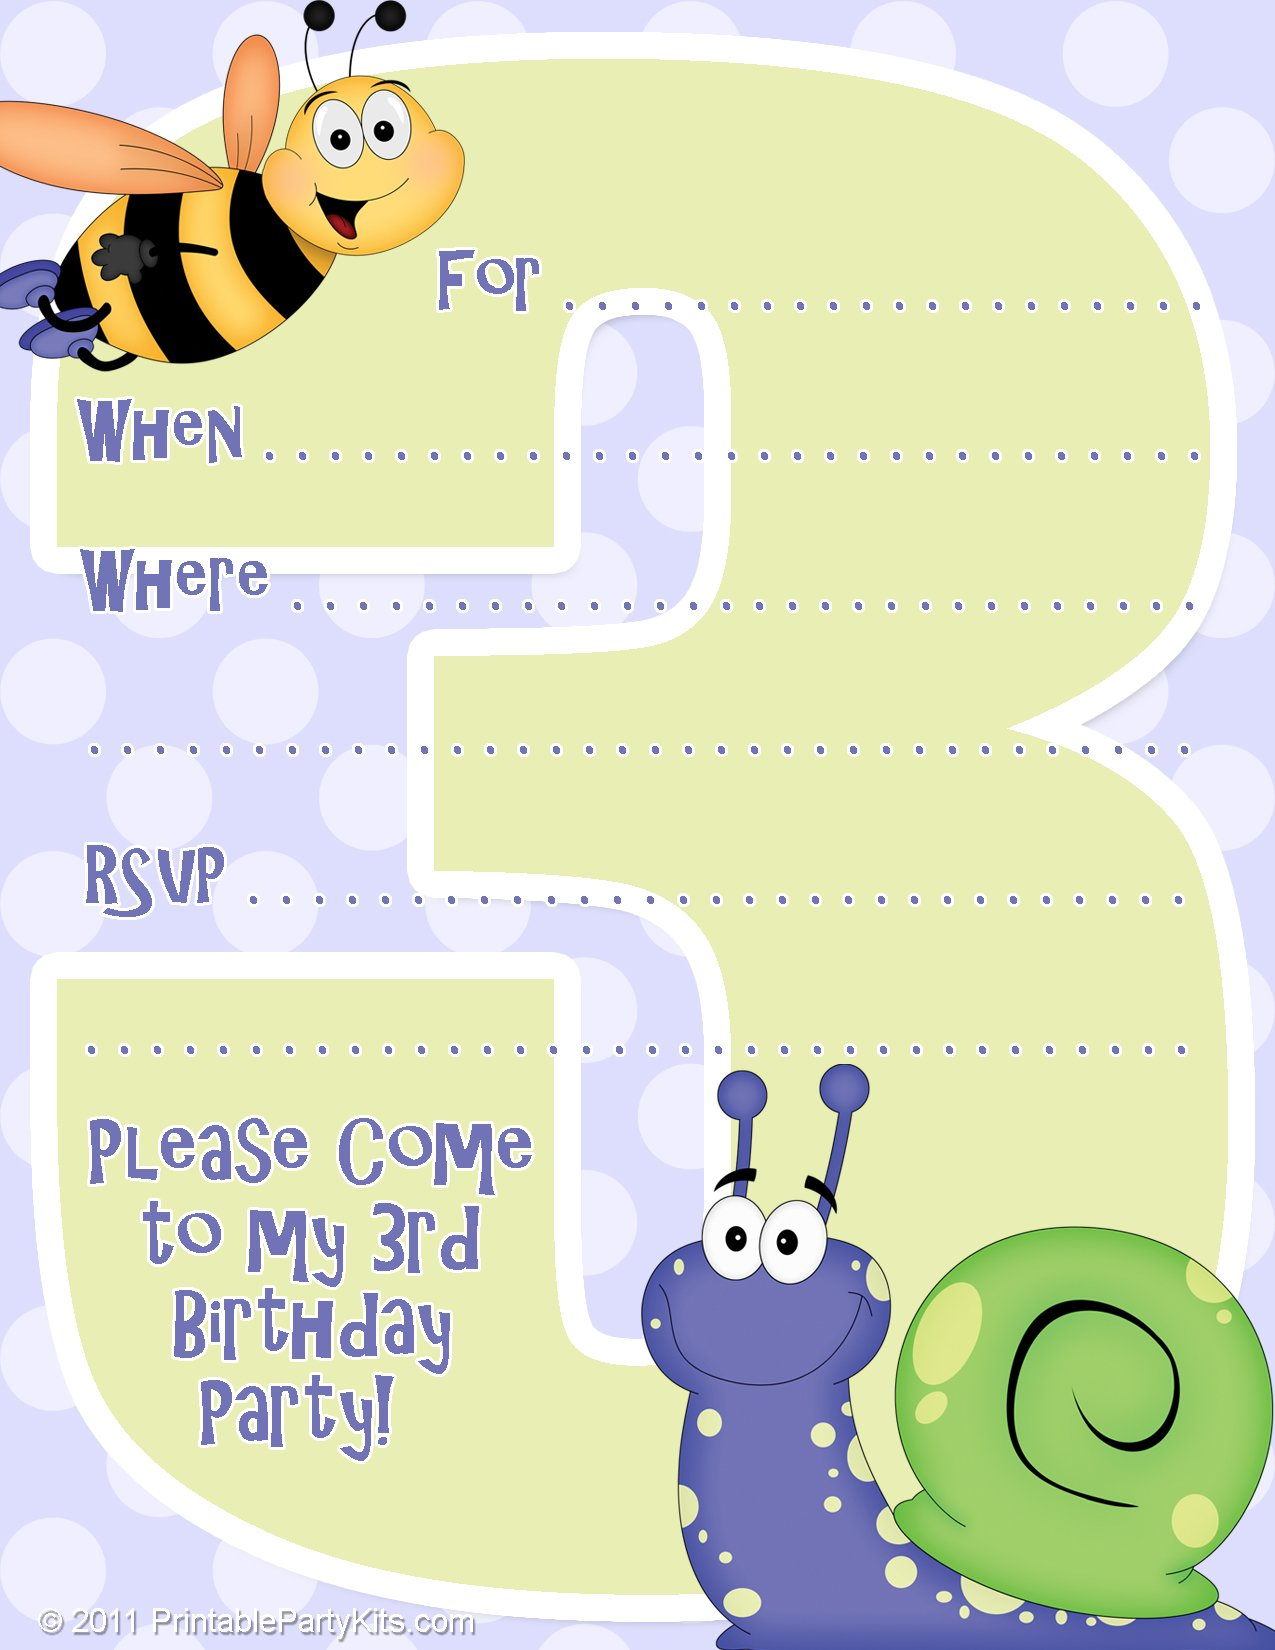 Free Printable Birthday Party Invitations – Where Can I Print Birthday Invitations